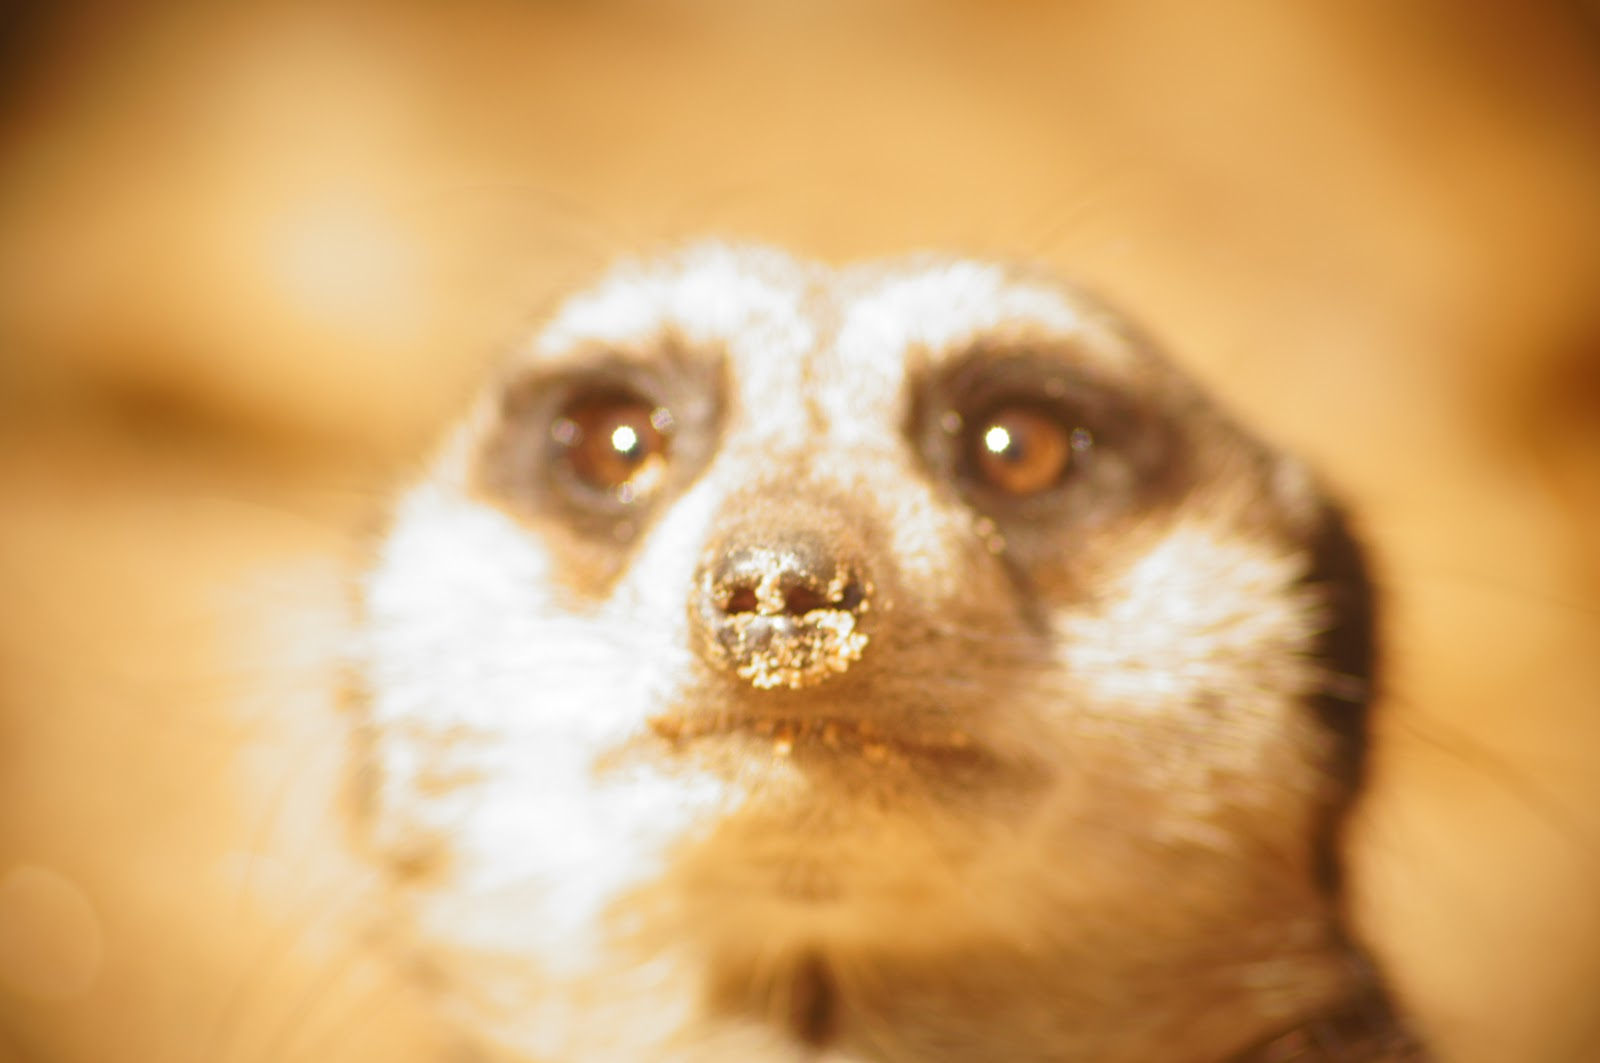 blurred picture of a meerkat